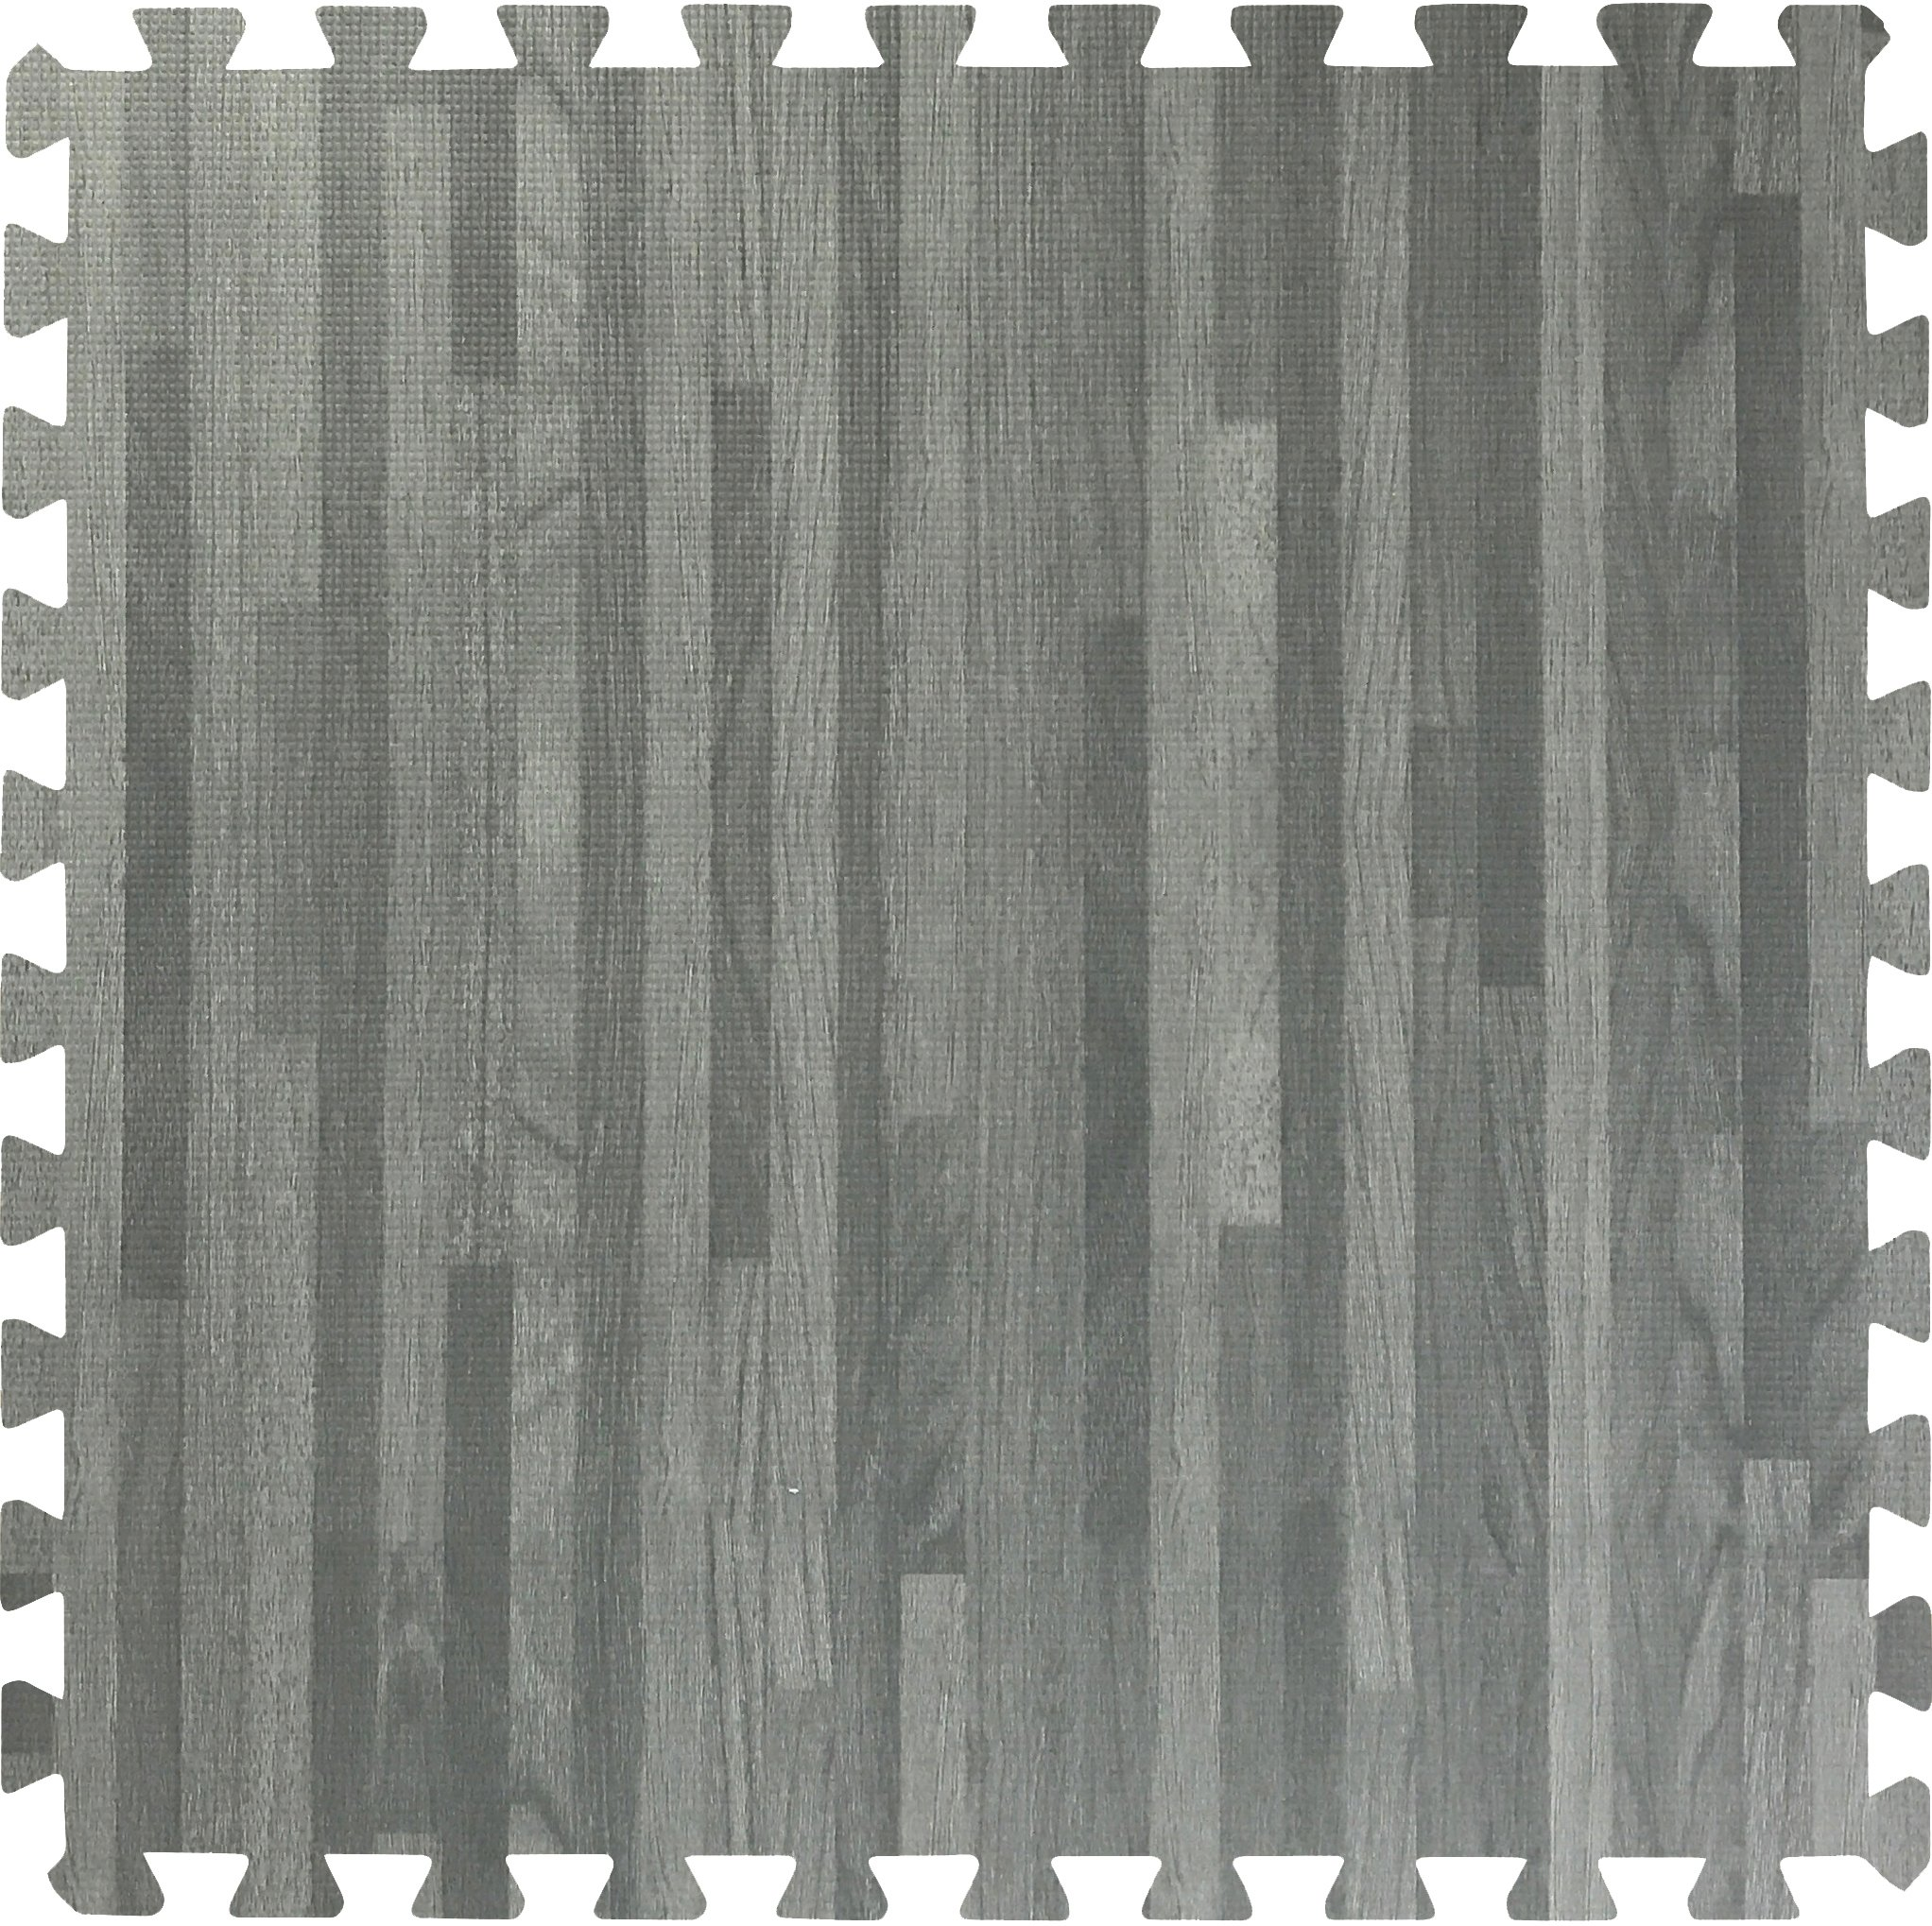 Sorbus Wood Floor Mats Foam Interlocking Wood Mats Each Tile 4 Square Feet 3/8-Inch Thick Puzzle Wood Tiles with Borders – for Home Office Playroom Basement (6 Tiles 24 Sq ft, Wood Grain - Gray) by Sorbus (Image #2)